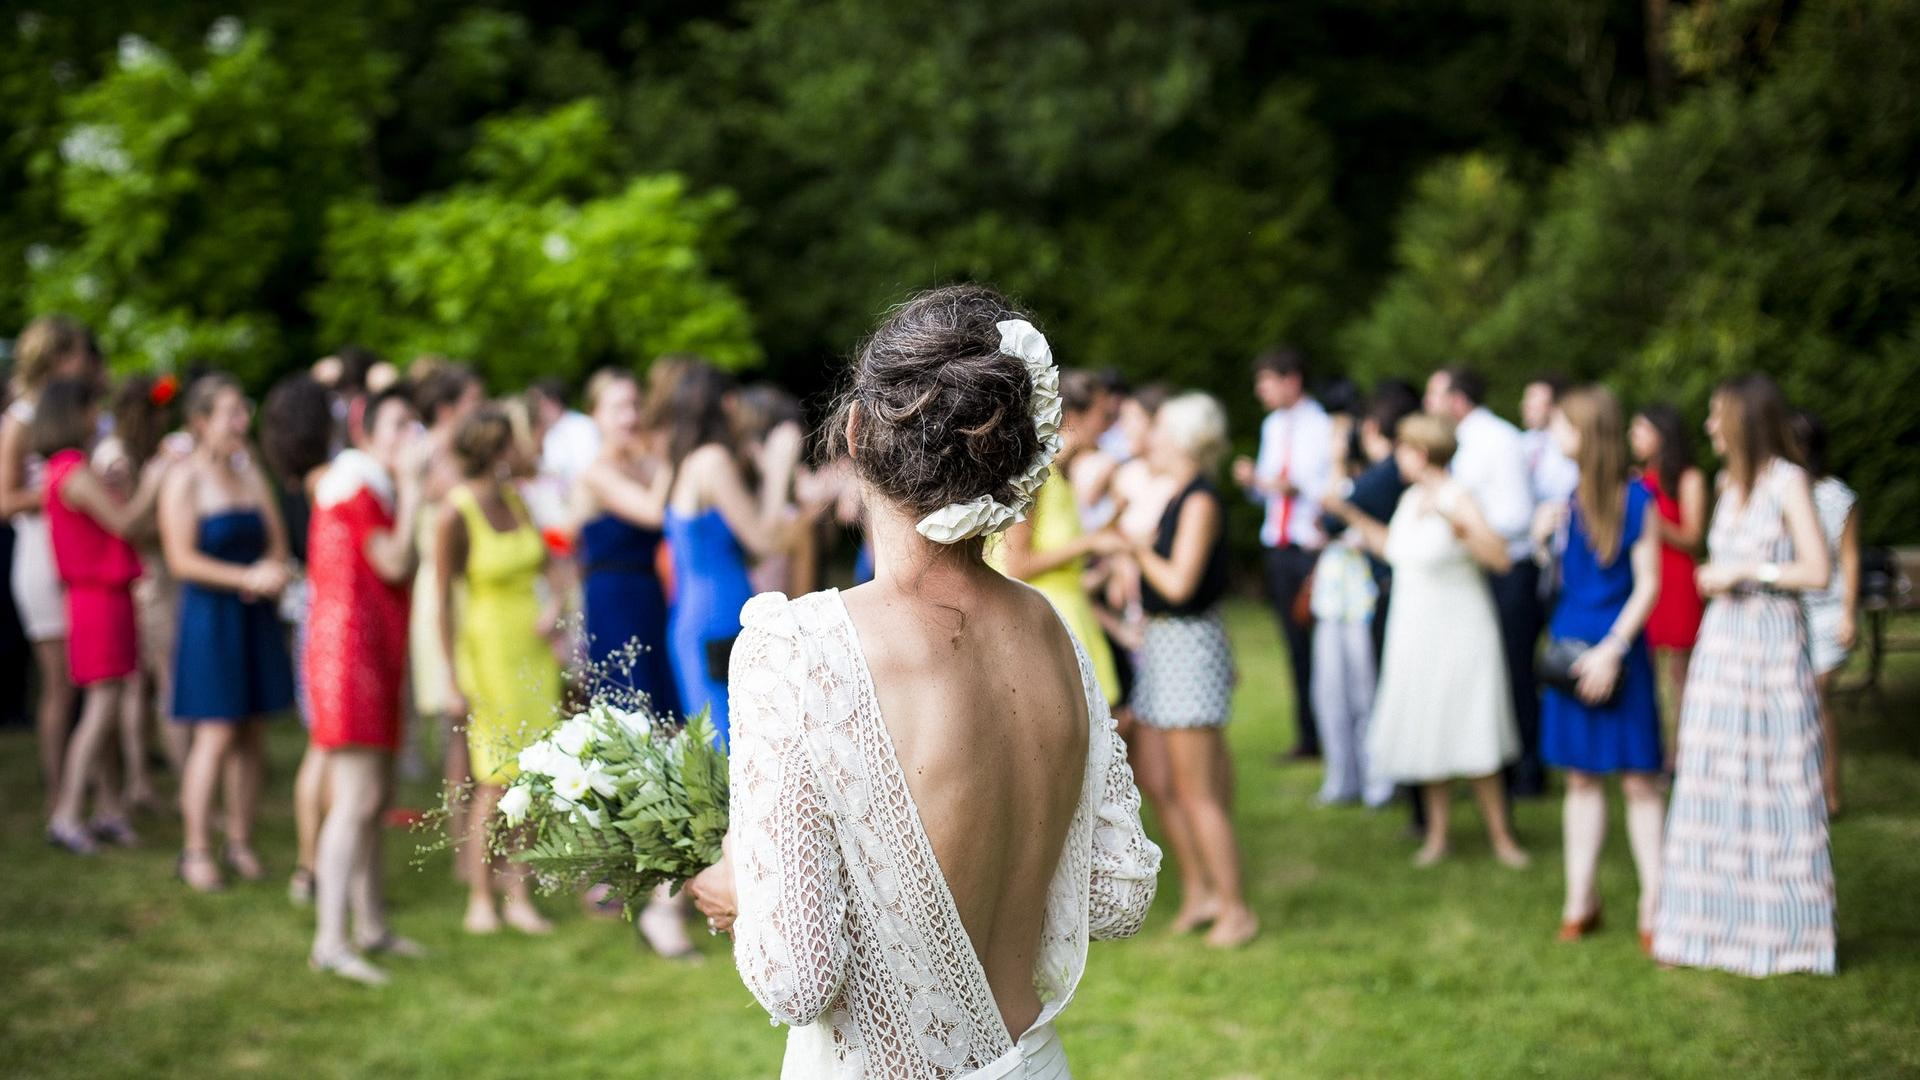 A photo of a bride looking at the guests on her wedding